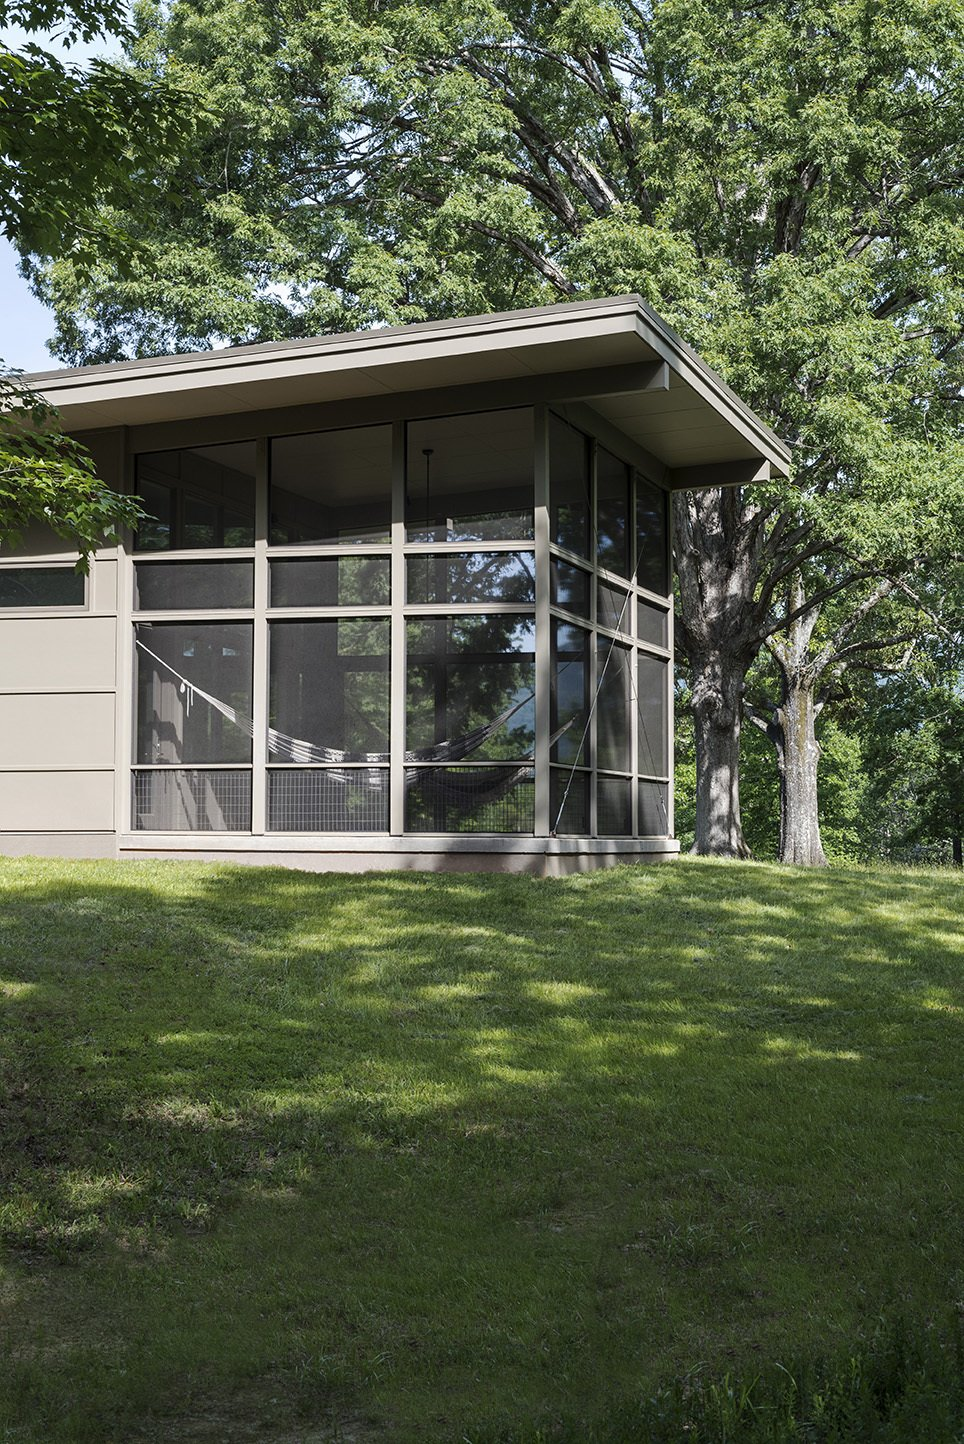 Outdoor, Side Yard, Trees, and Grass  The Hammock House by Samsel Architects